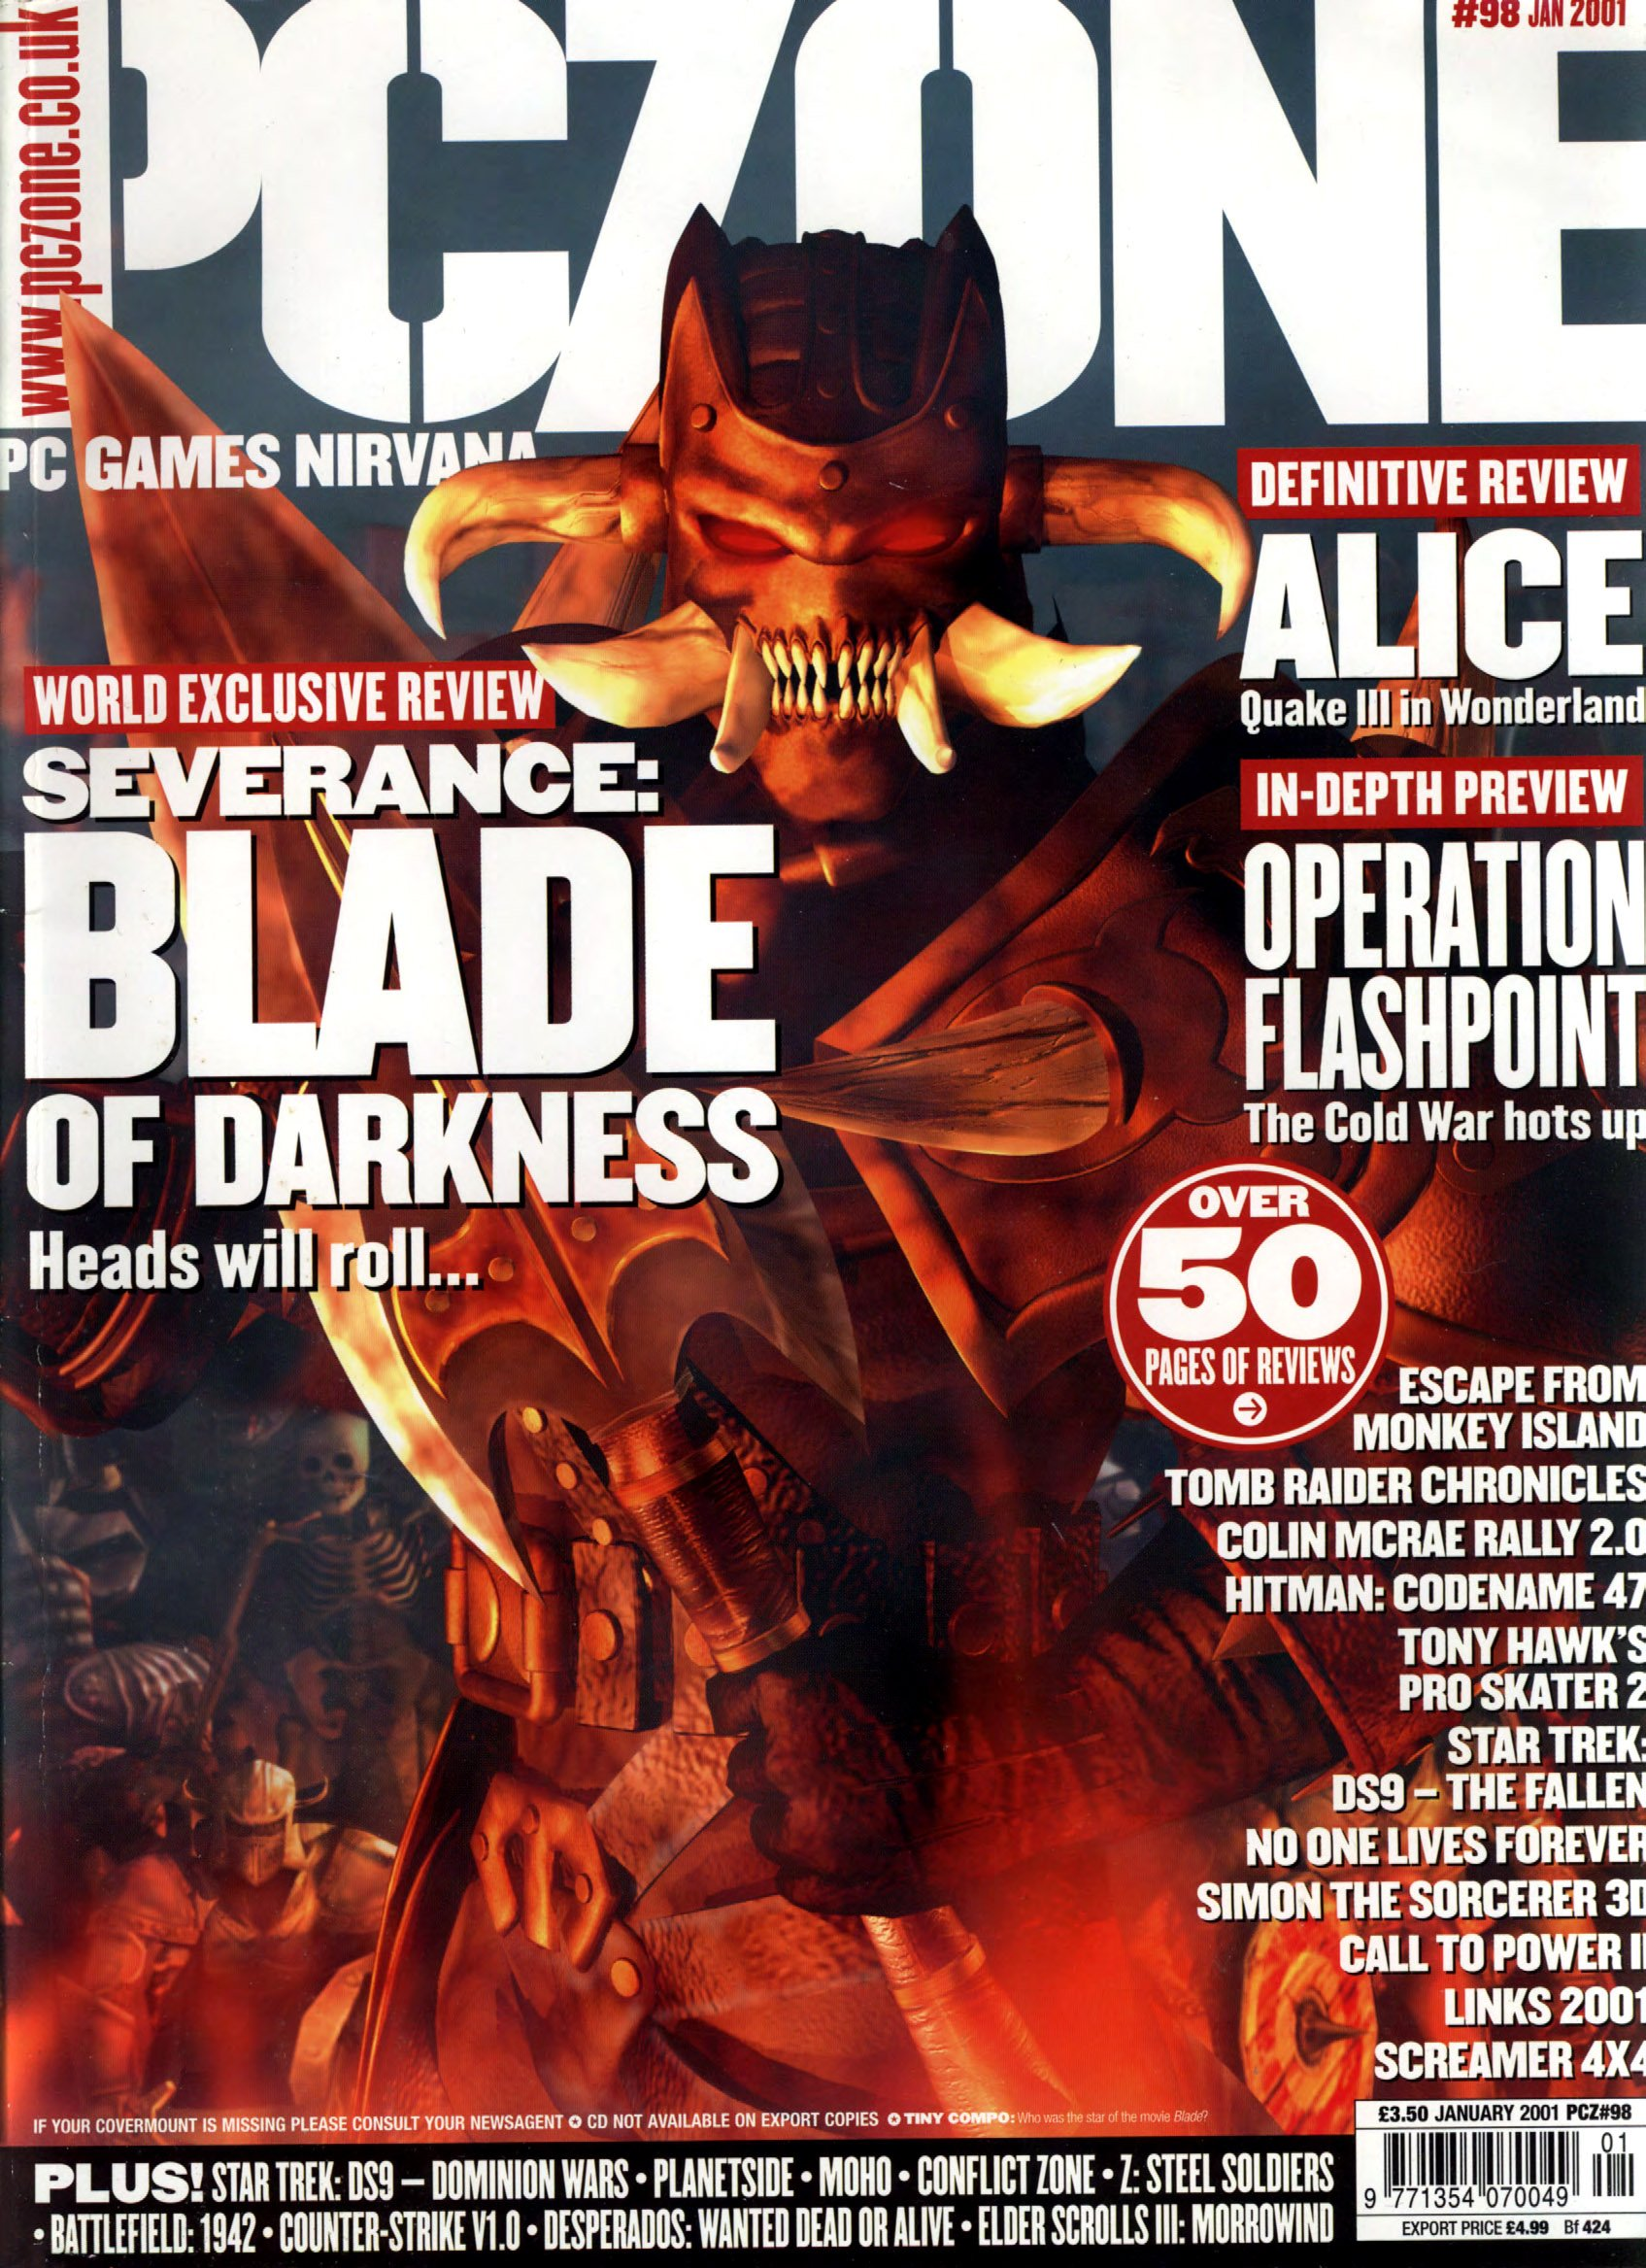 PC Zone Issue 098 (January 2001)